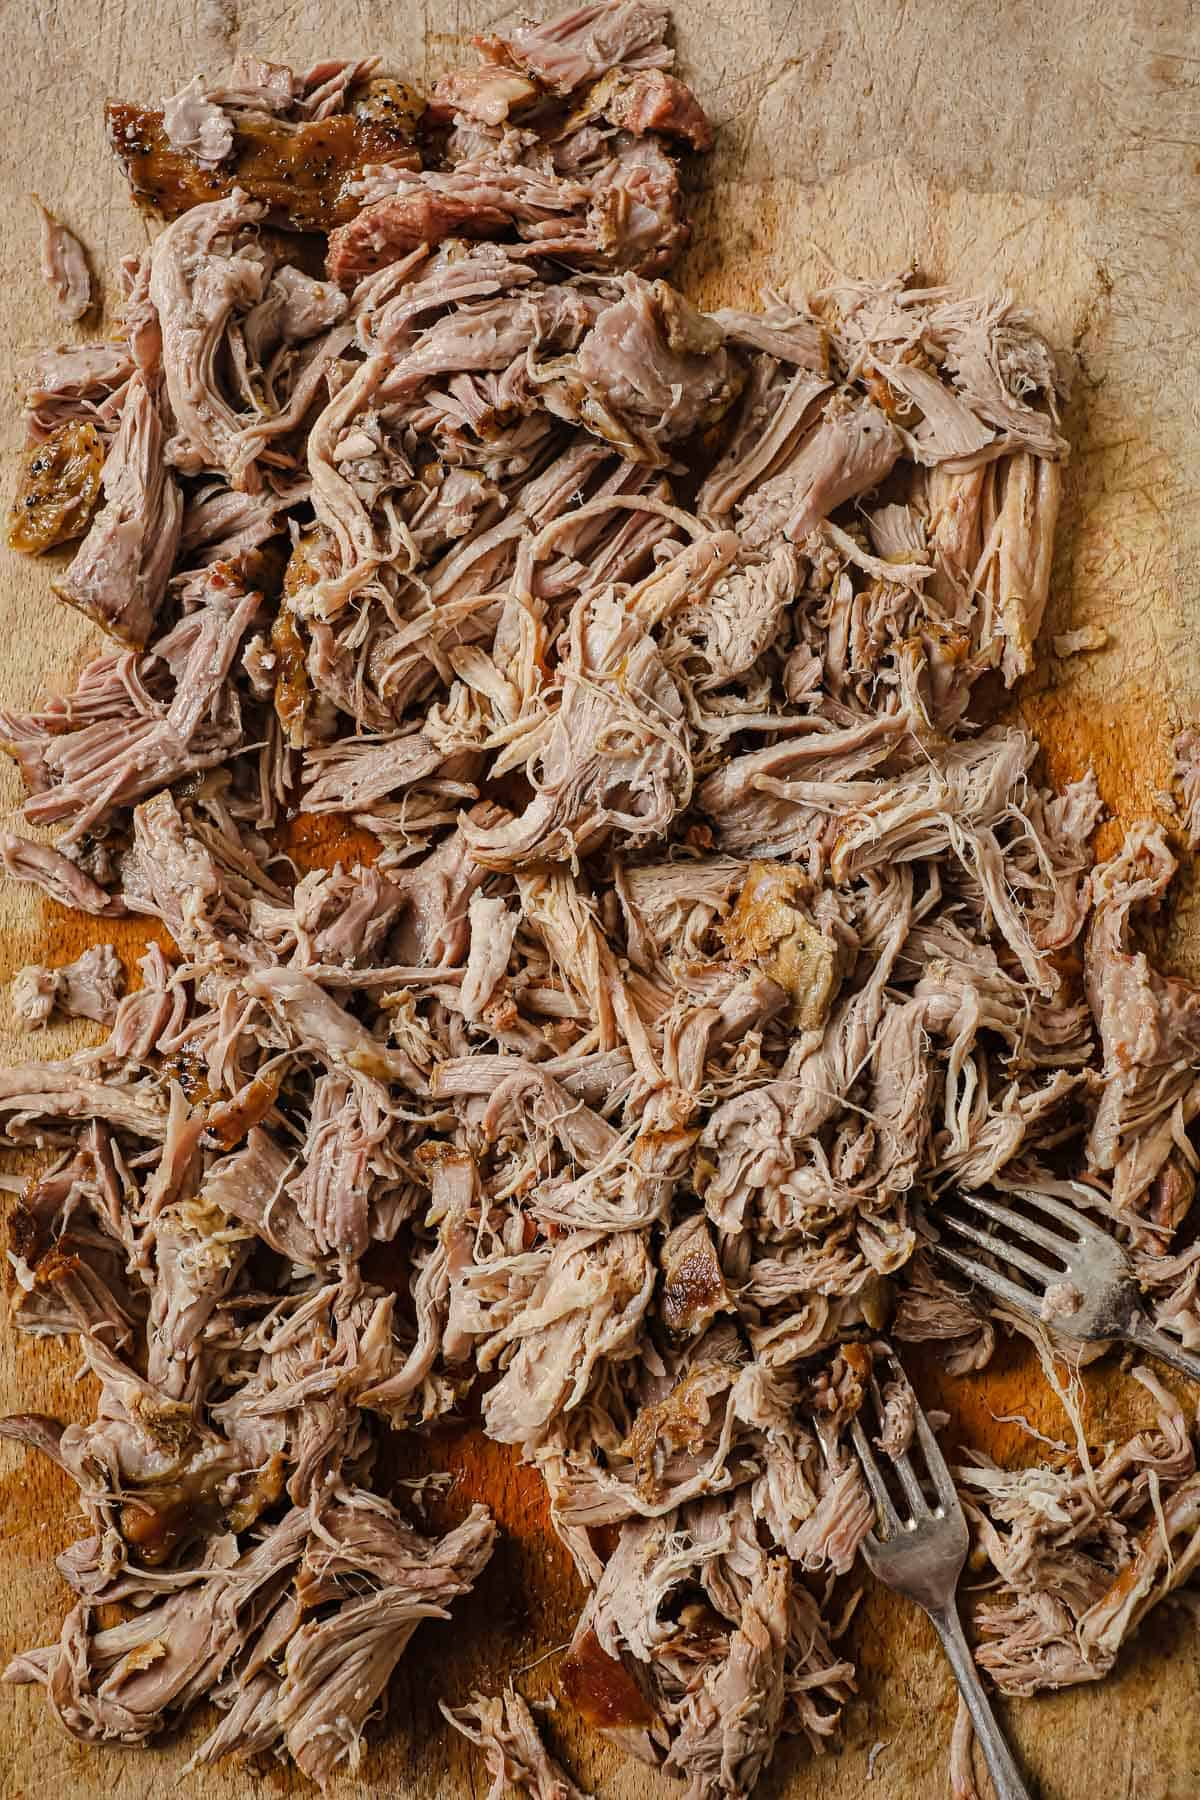 cooked pork shoulder, shredded with 2 forks, on a wooden cutting board